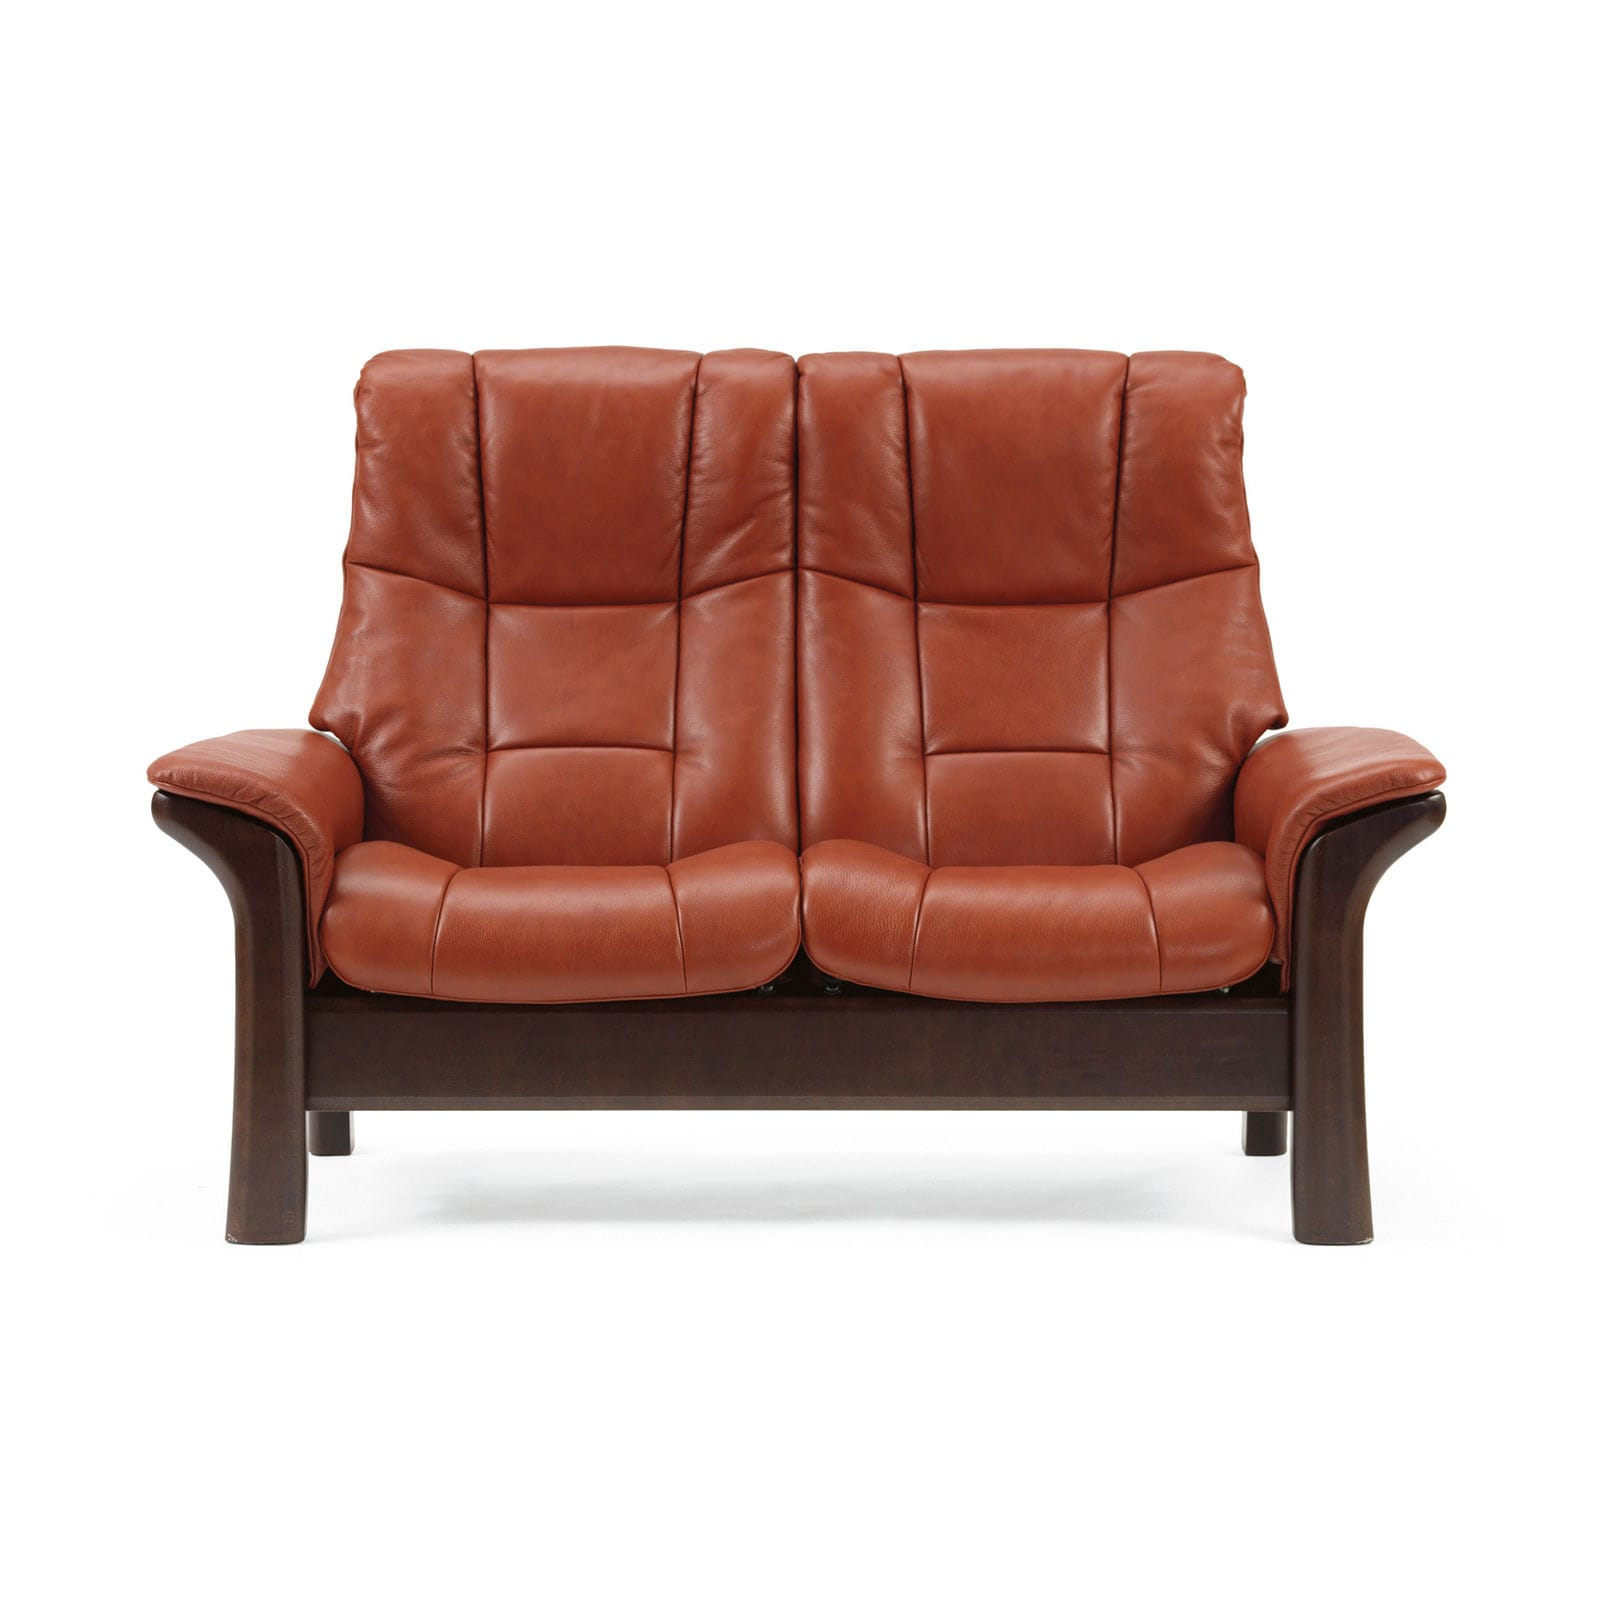 Stressless Sofa Preise Stressless Sessel Preise Top Latest Large Size Of Sessel